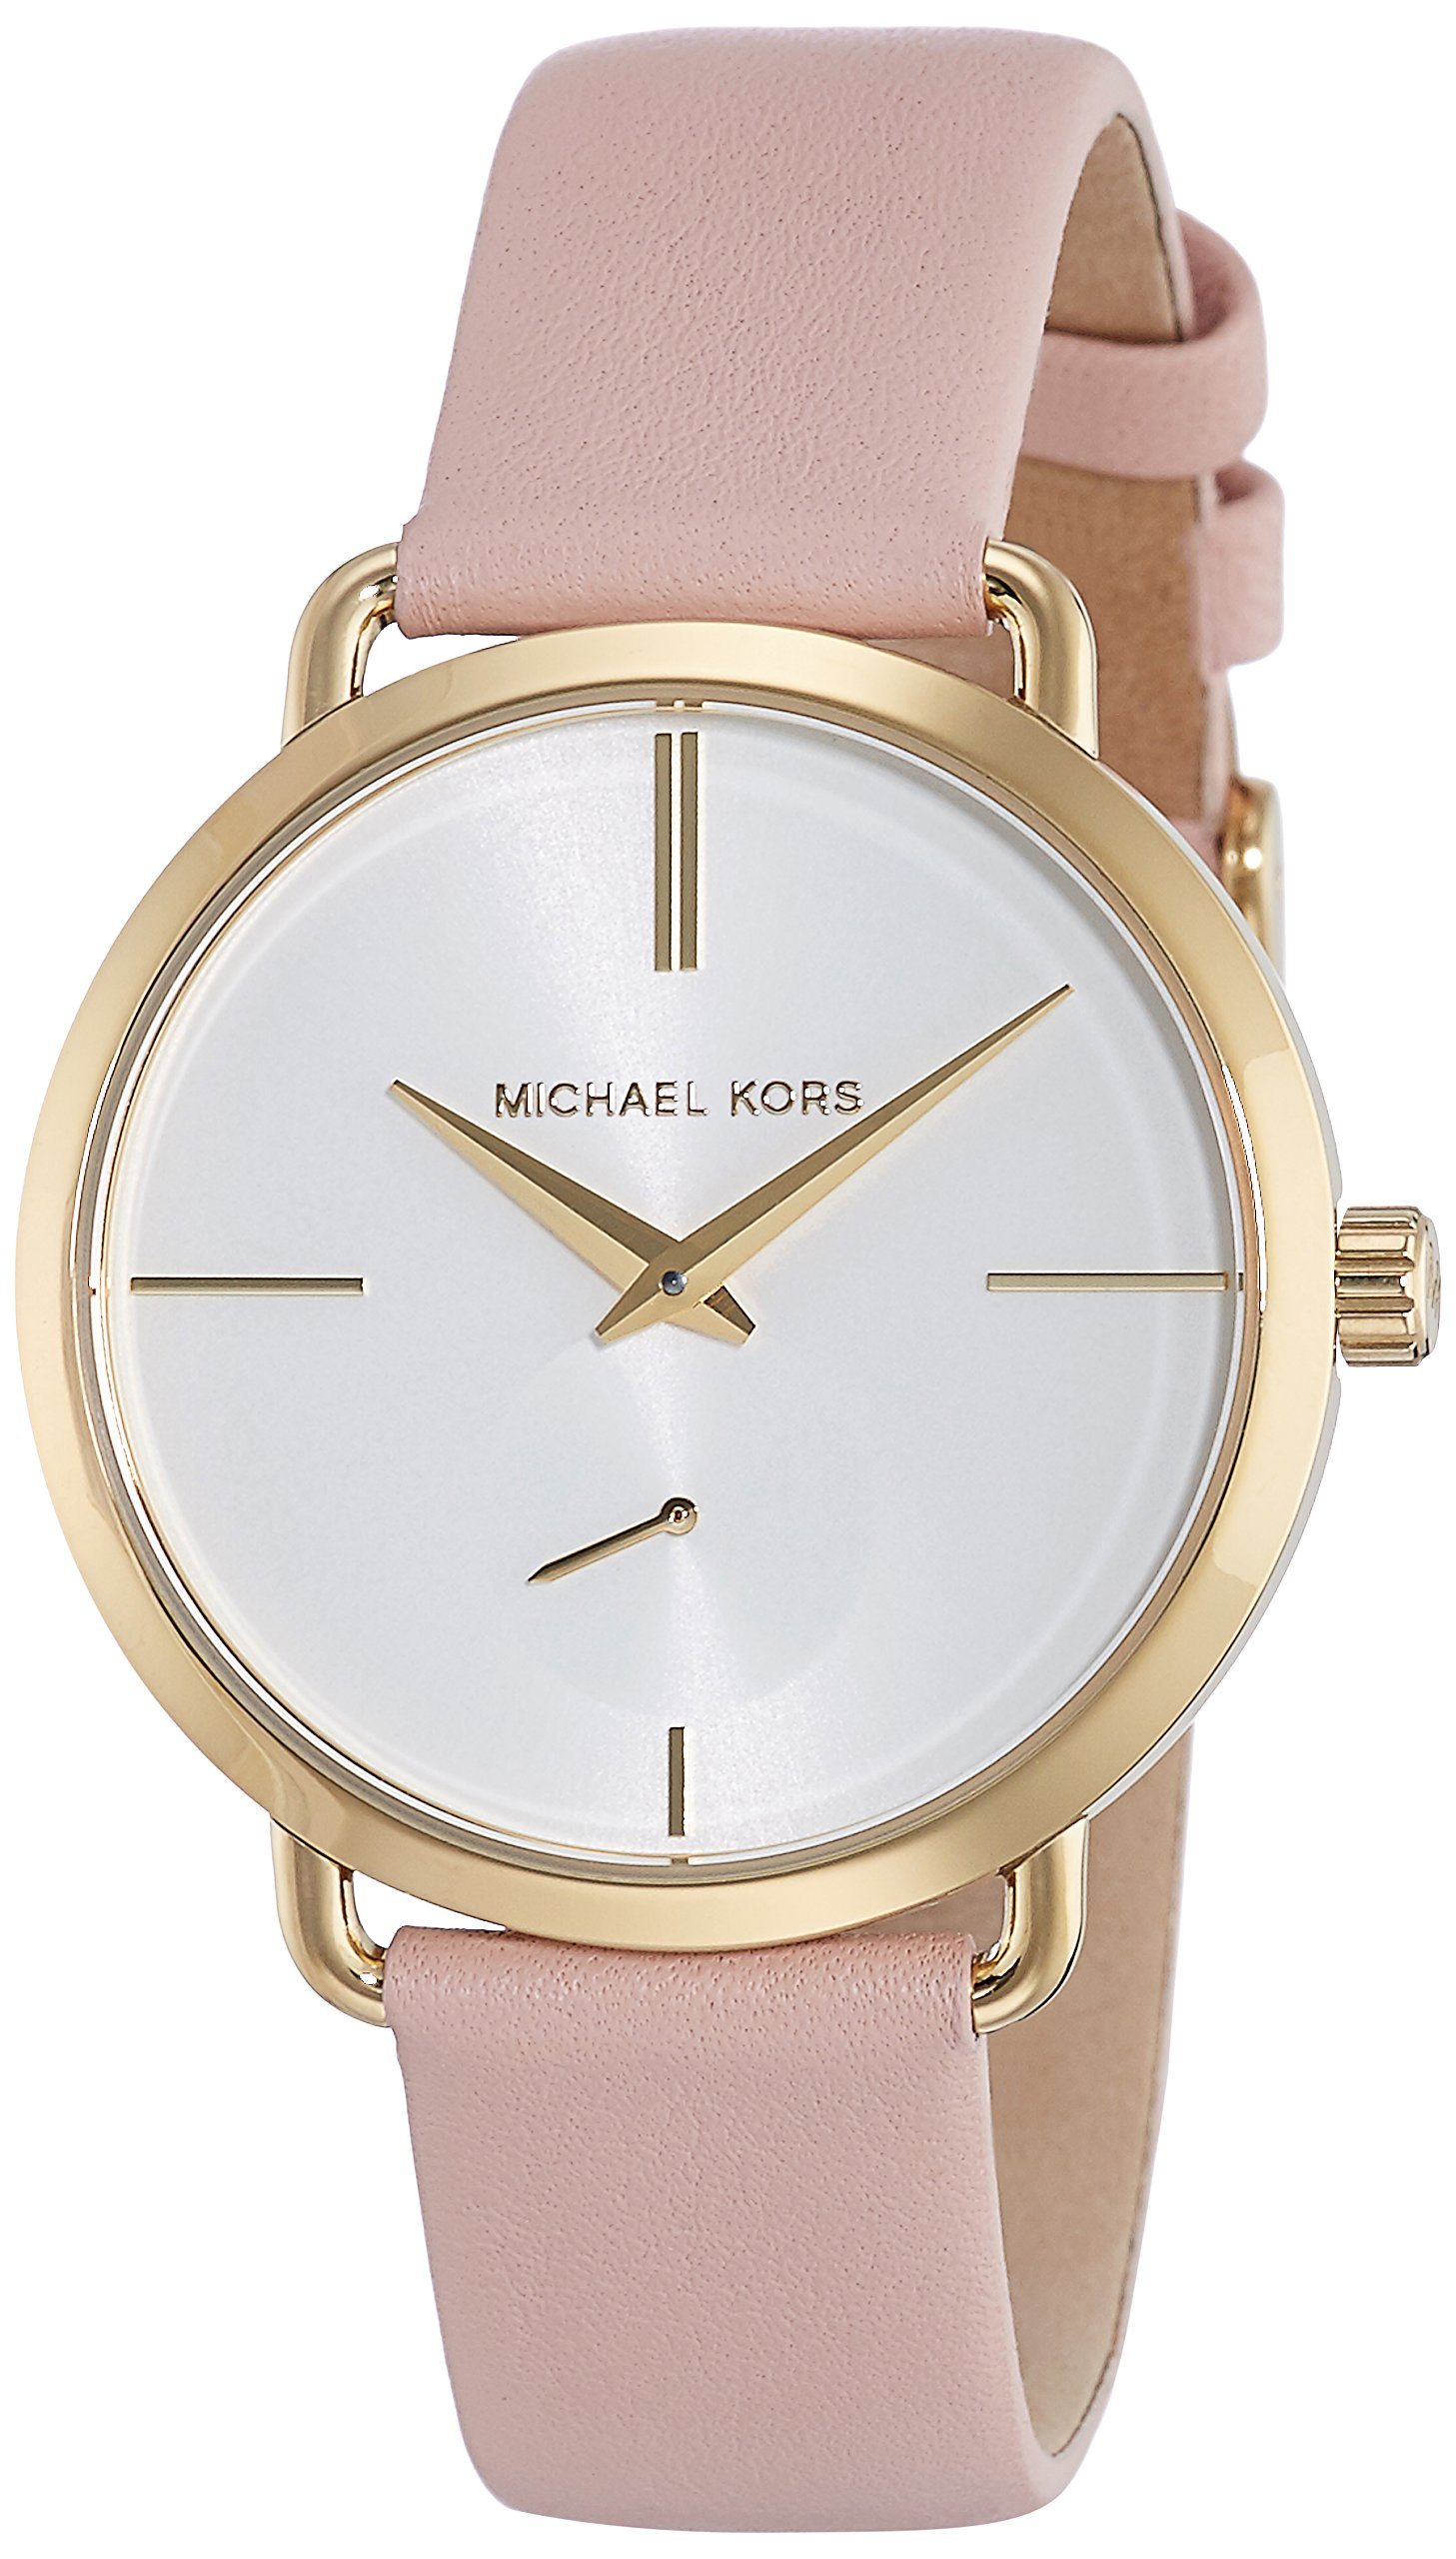 Michael Kors Women's Portia Pink Watch MK2659